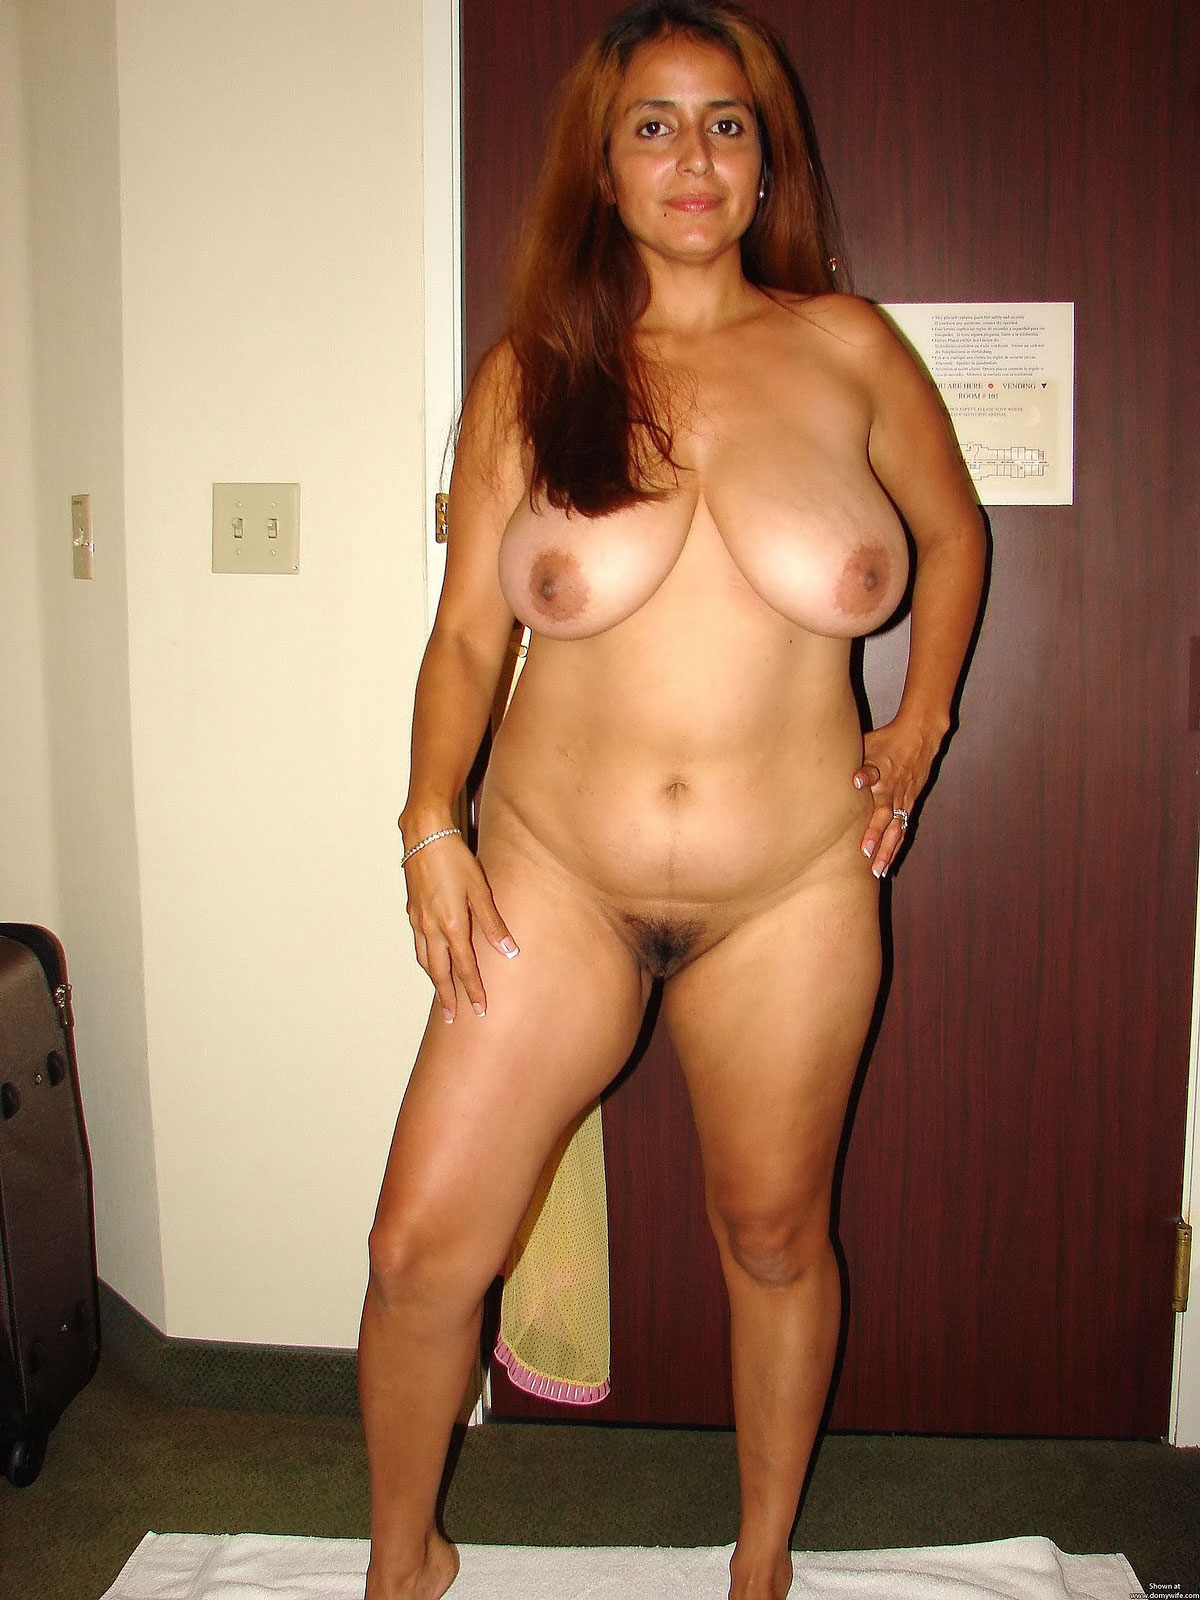 BBW Indian Breast congratulate, this